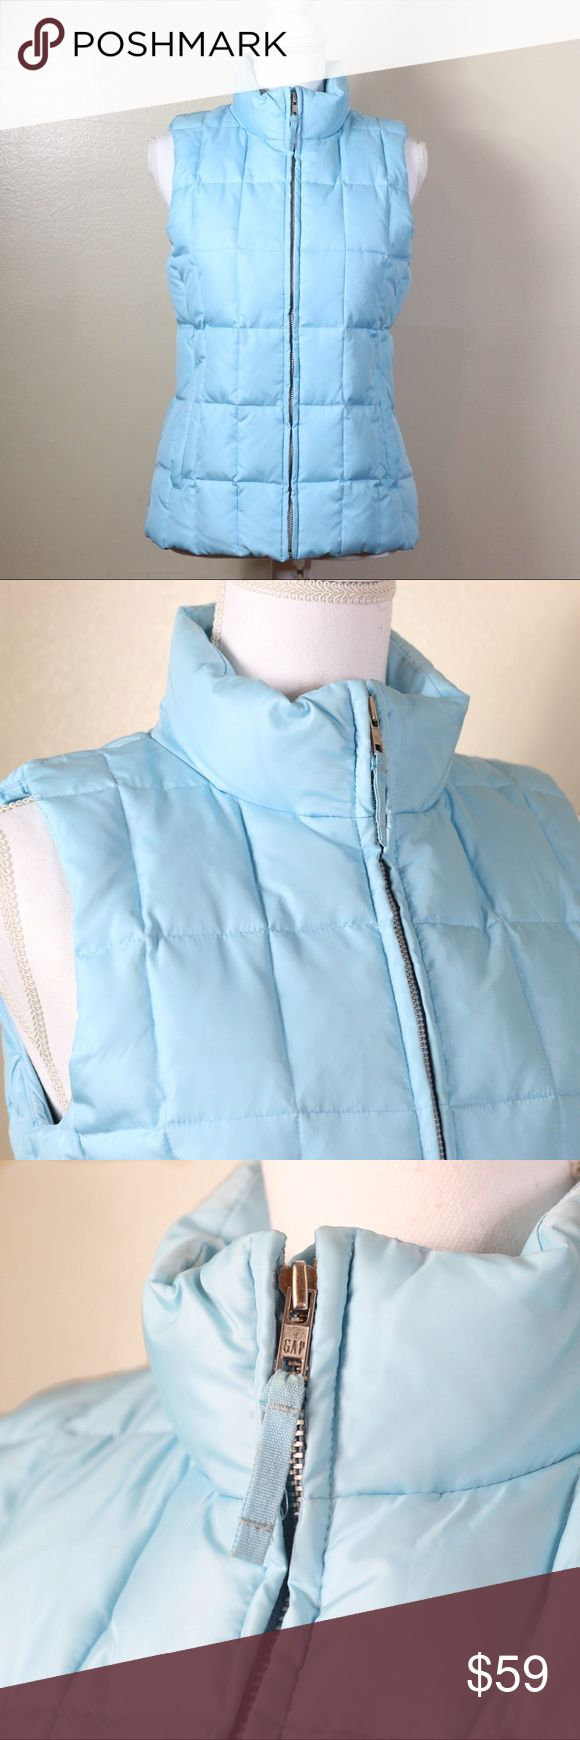 GAP Sky Blue Puffer Vest GAP puffer vest in Size S. Materials listed in pictures. Ask any questions you may have before buying! Offers welcome through the offer button! GAP Jackets & Coats Vests